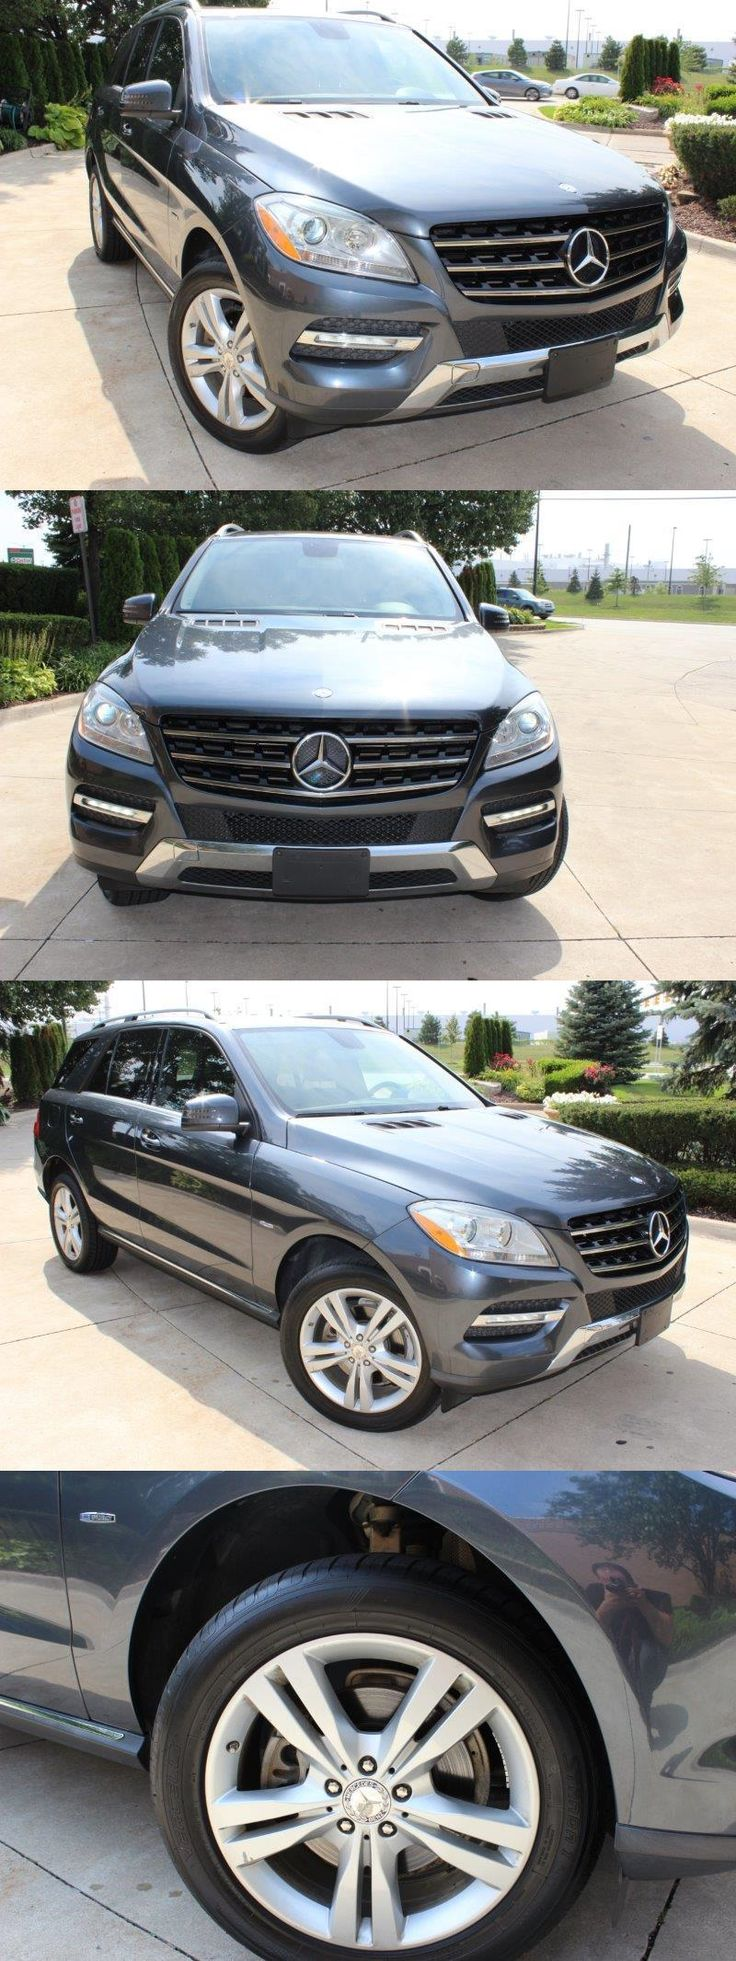 SUVs: 2012 Mercedes-Benz M-Class Awd-Edition(4Matic) Ml-Class Suv 2012 Mercedes-Benz M-Class Awd-Edition(4Matic) Ml-Class Suv -> BUY IT NOW ONLY: $22999 on eBay!